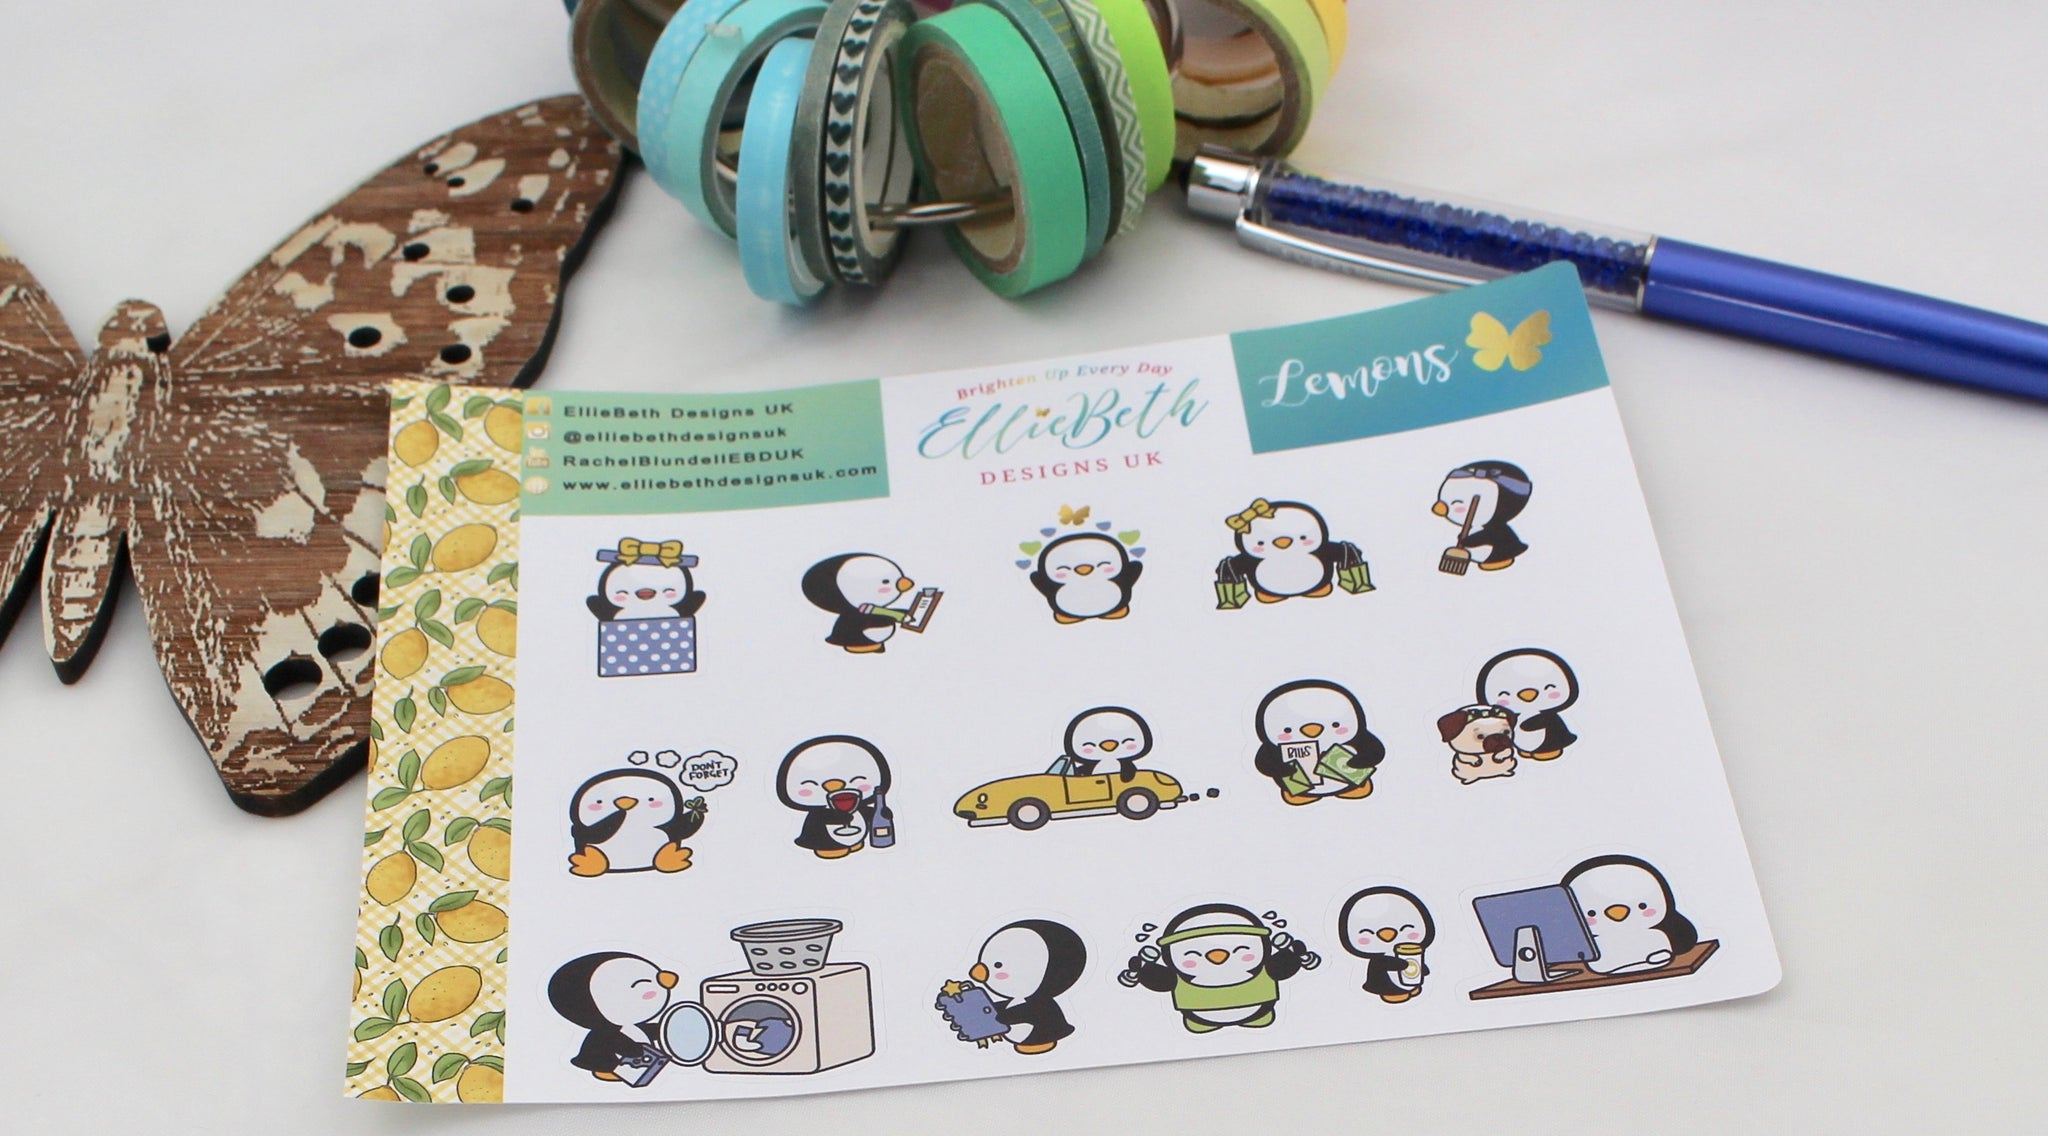 Lemons - A Penguin For Every Occasion -  binder ready planner stickers - EllieBeth Designs UK